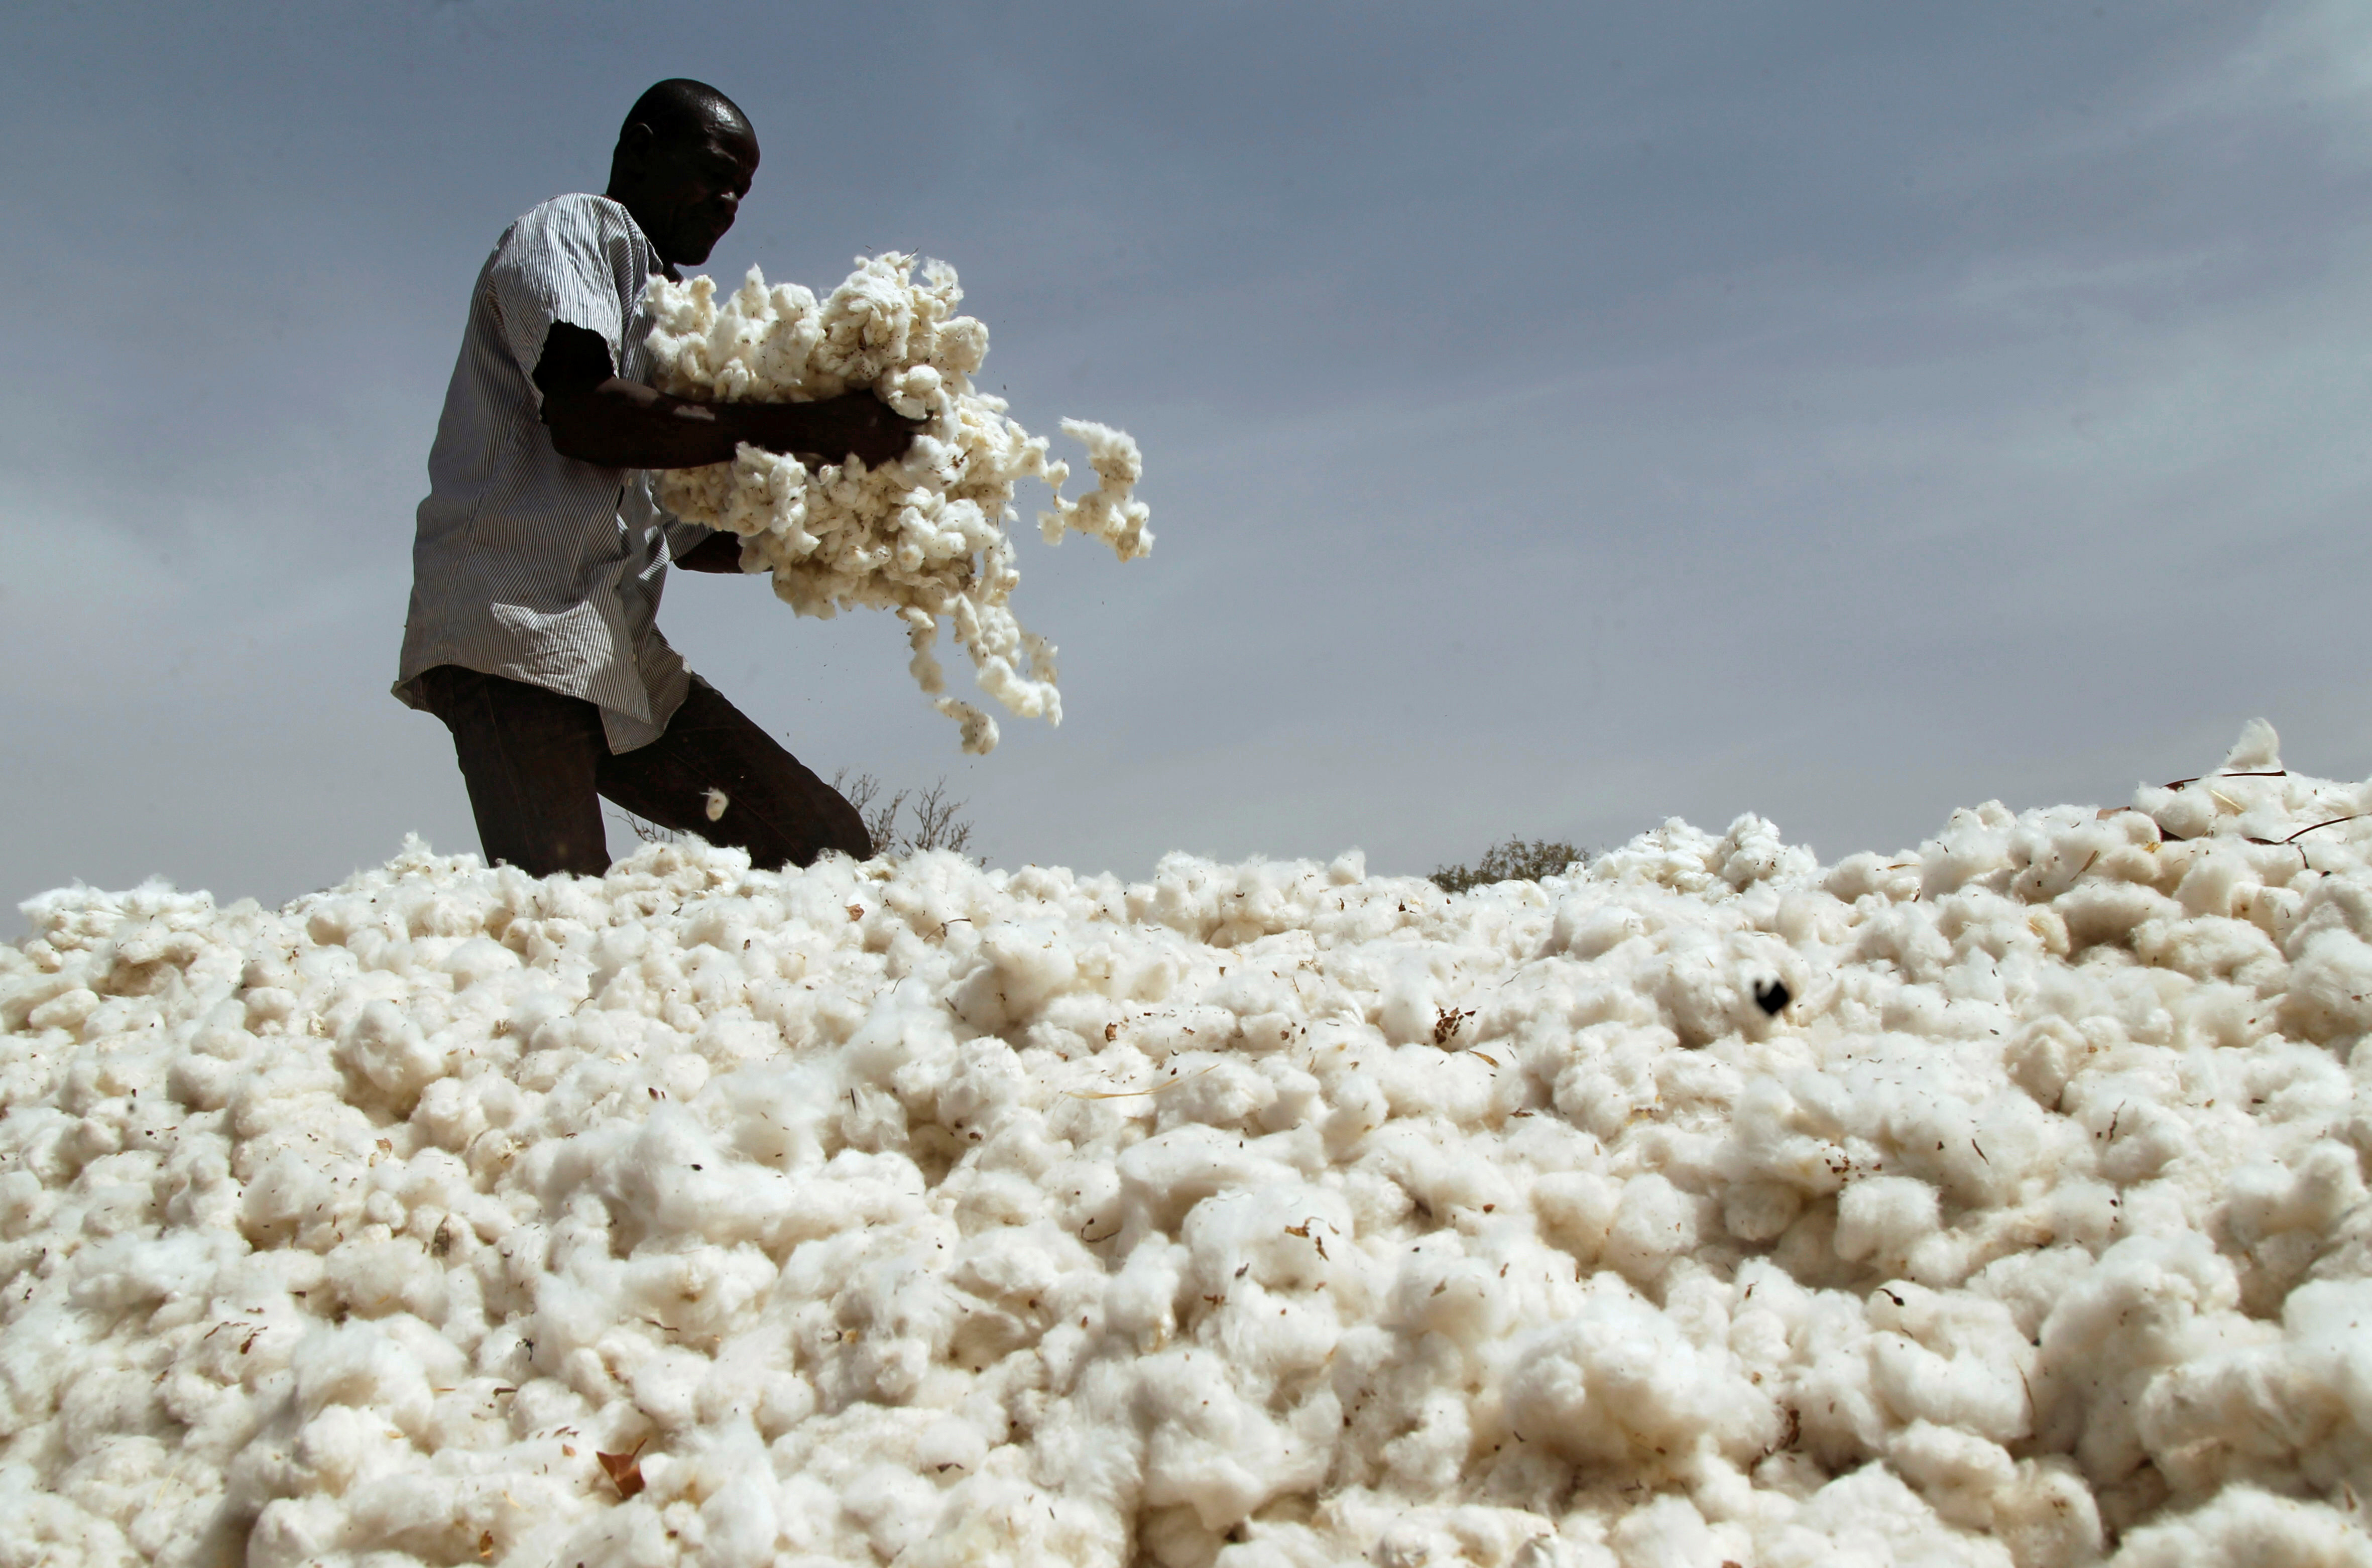 Adopt measures to increase cotton production, RC orders